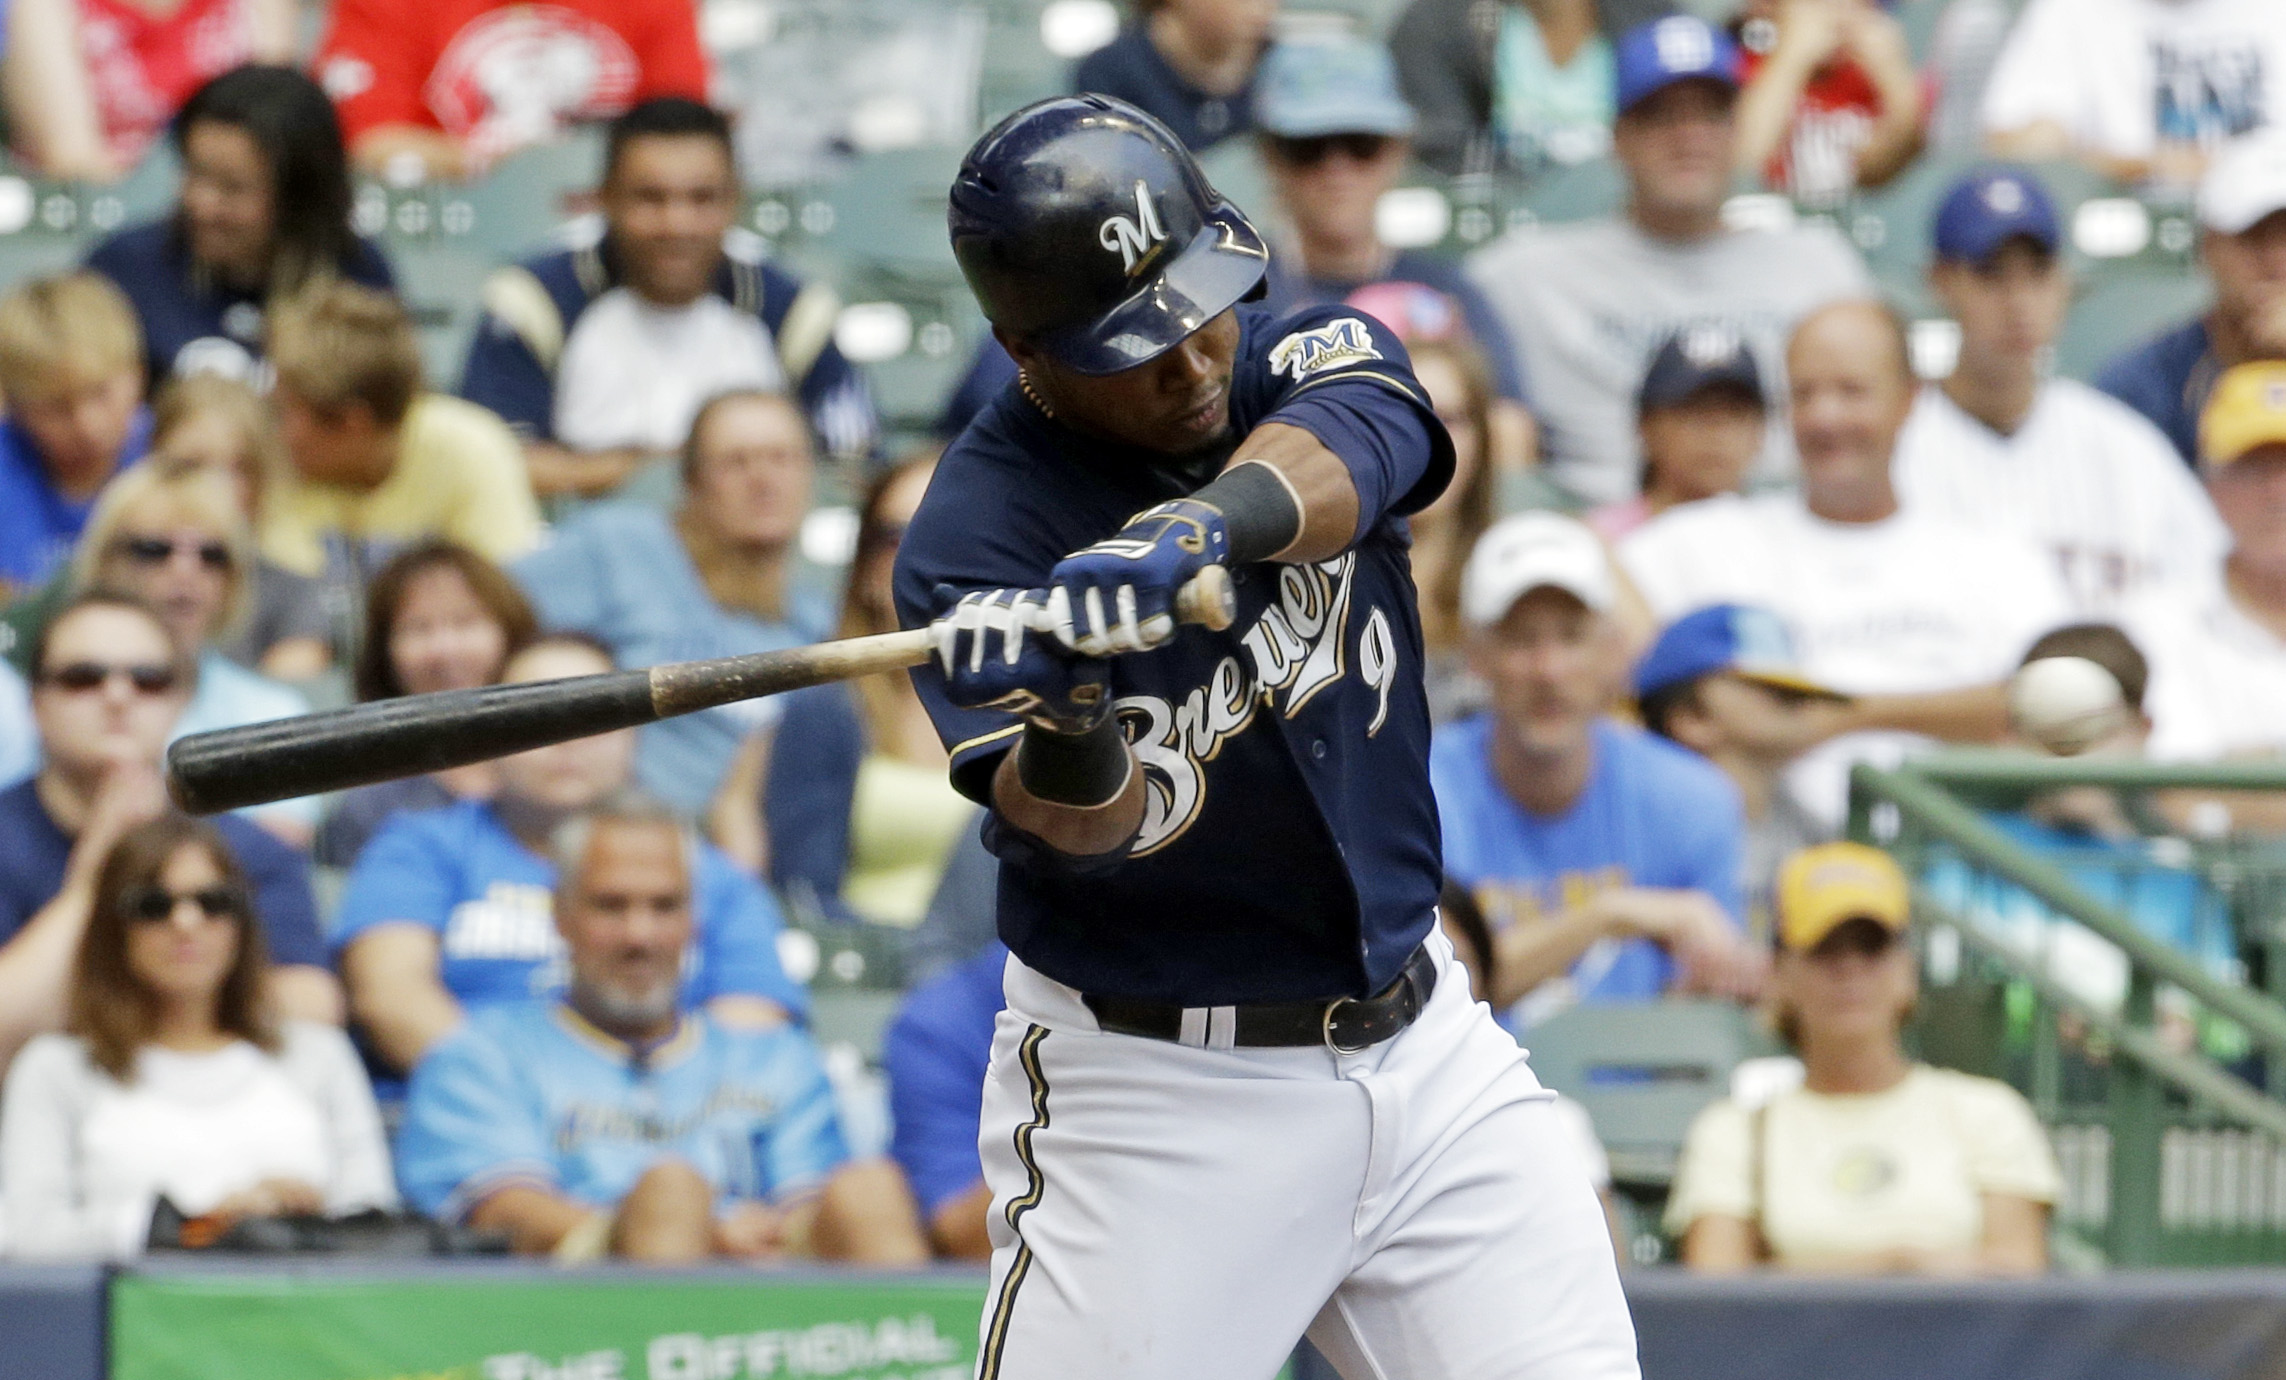 Milwaukee Brewers' Jean Segura hits an RBI triple during the eighth inning of a baseball game against the Cincinnati Reds Sunday, Aug. 30, 2015, in Milwaukee. (AP Photo/Morry Gash)